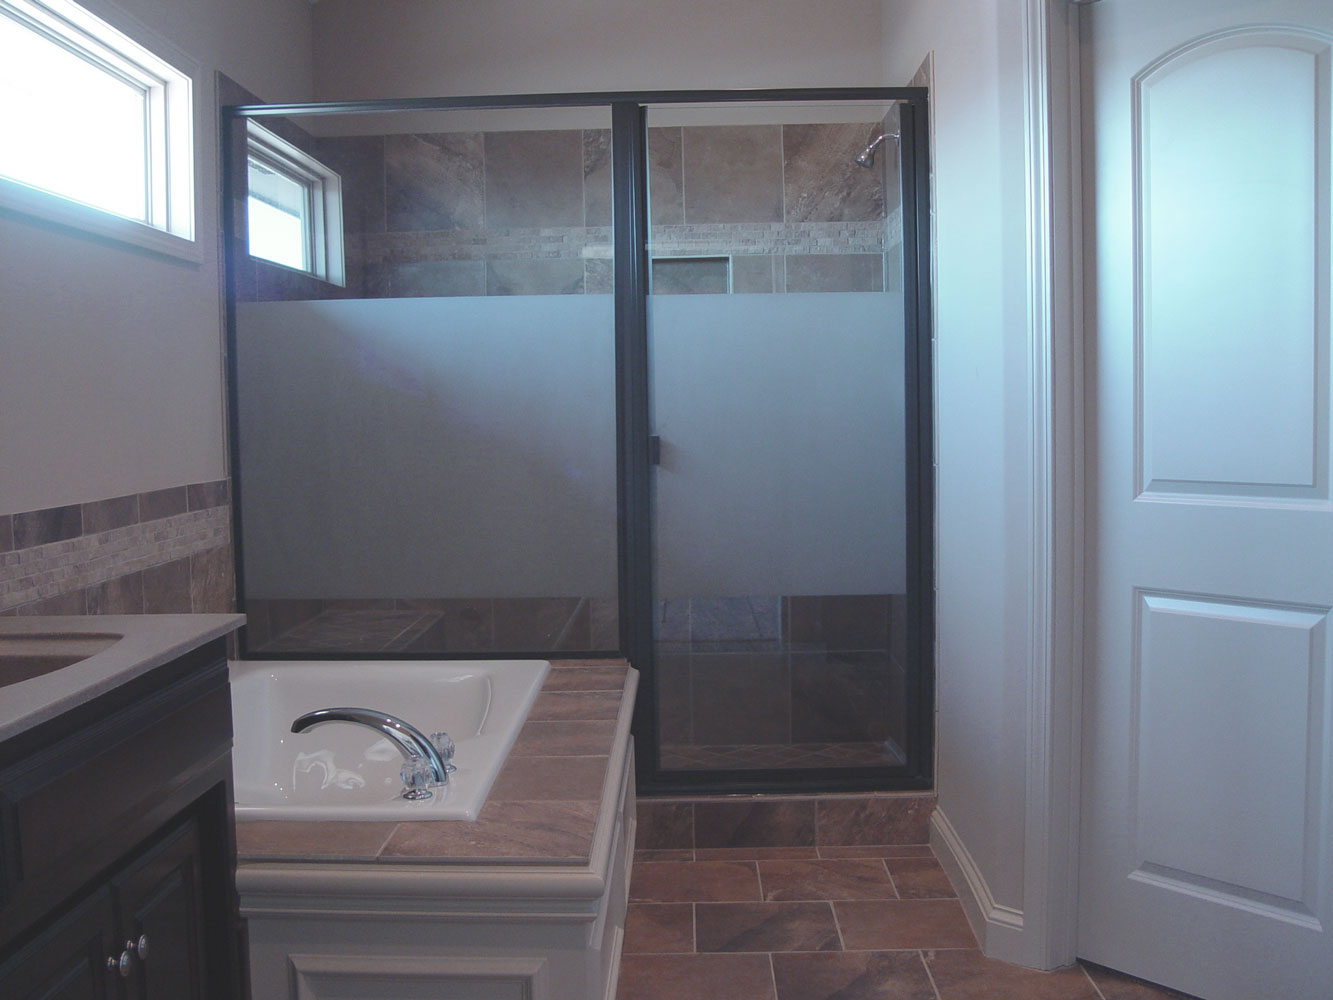 1000 #358296 Clearshield Sealer Price Quote Order Form Design Page picture/photo Privacy Glass Doors 44591333